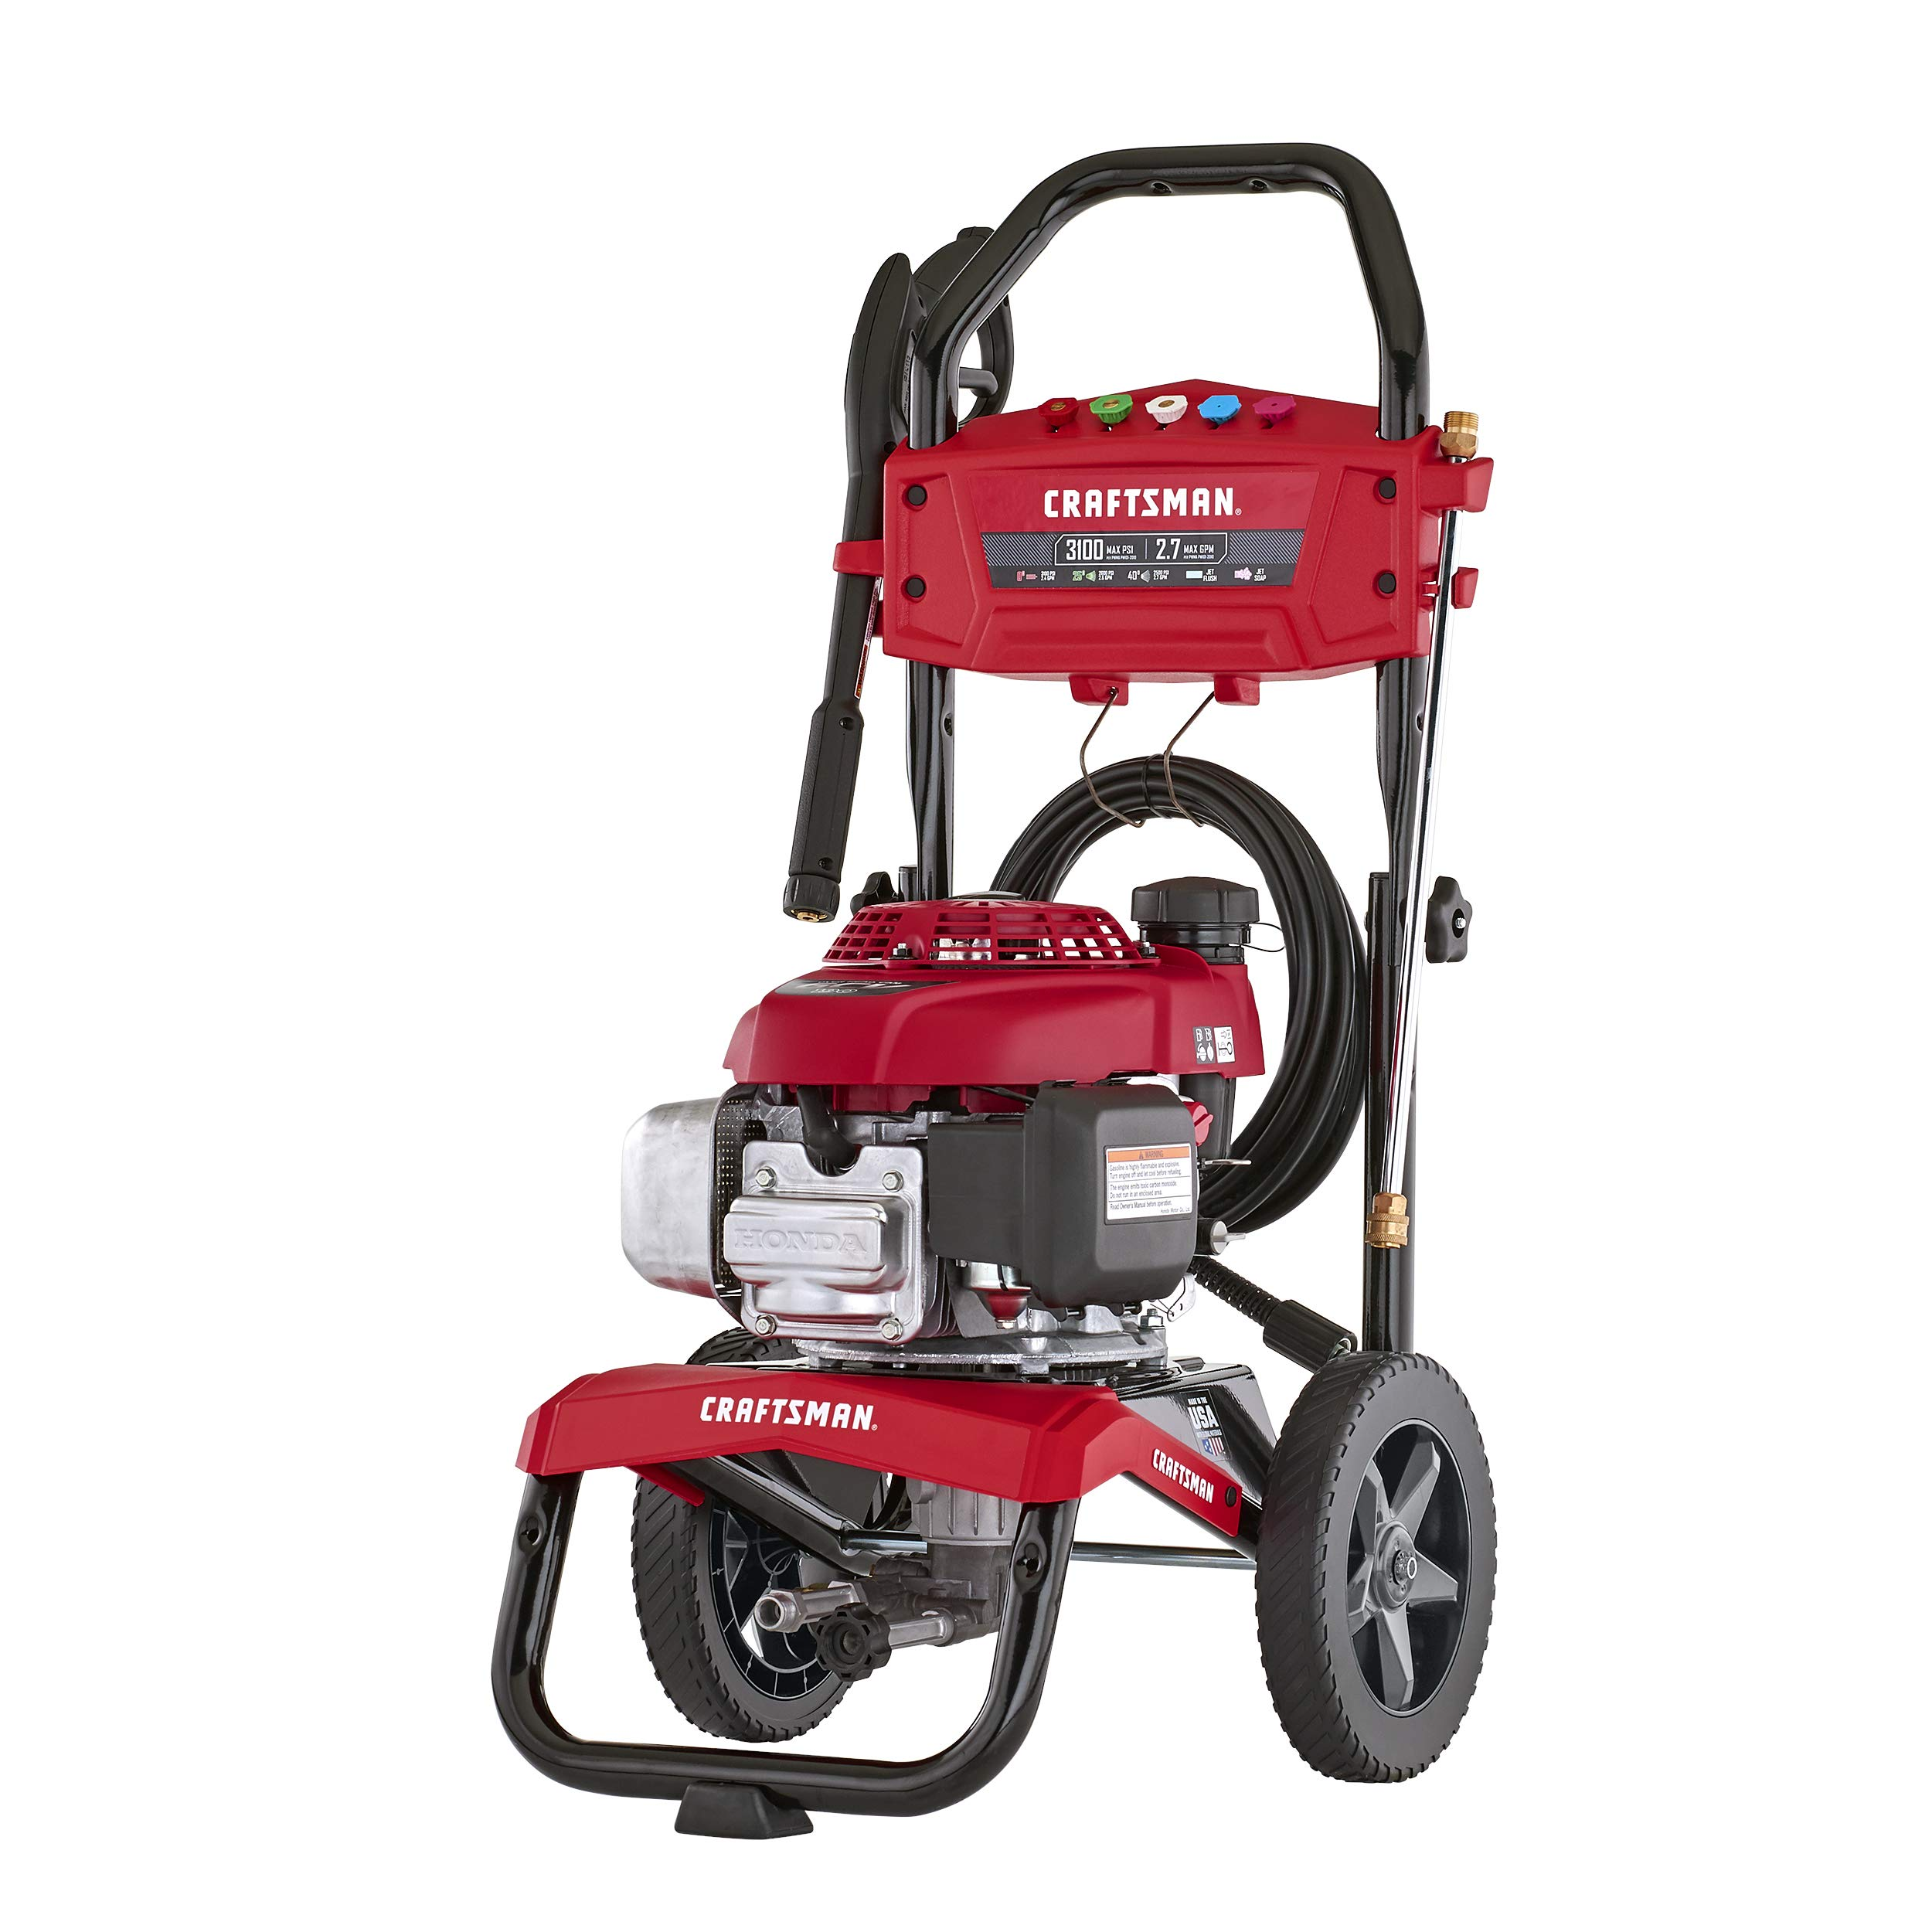 CRAFTSMAN CMXGWAS021023 3100 MAX PSI 2.7 MAX GPM Gas Pressure Washer Powered by Honda 187cc Engine, Made in USA with Global Materials by Craftsman